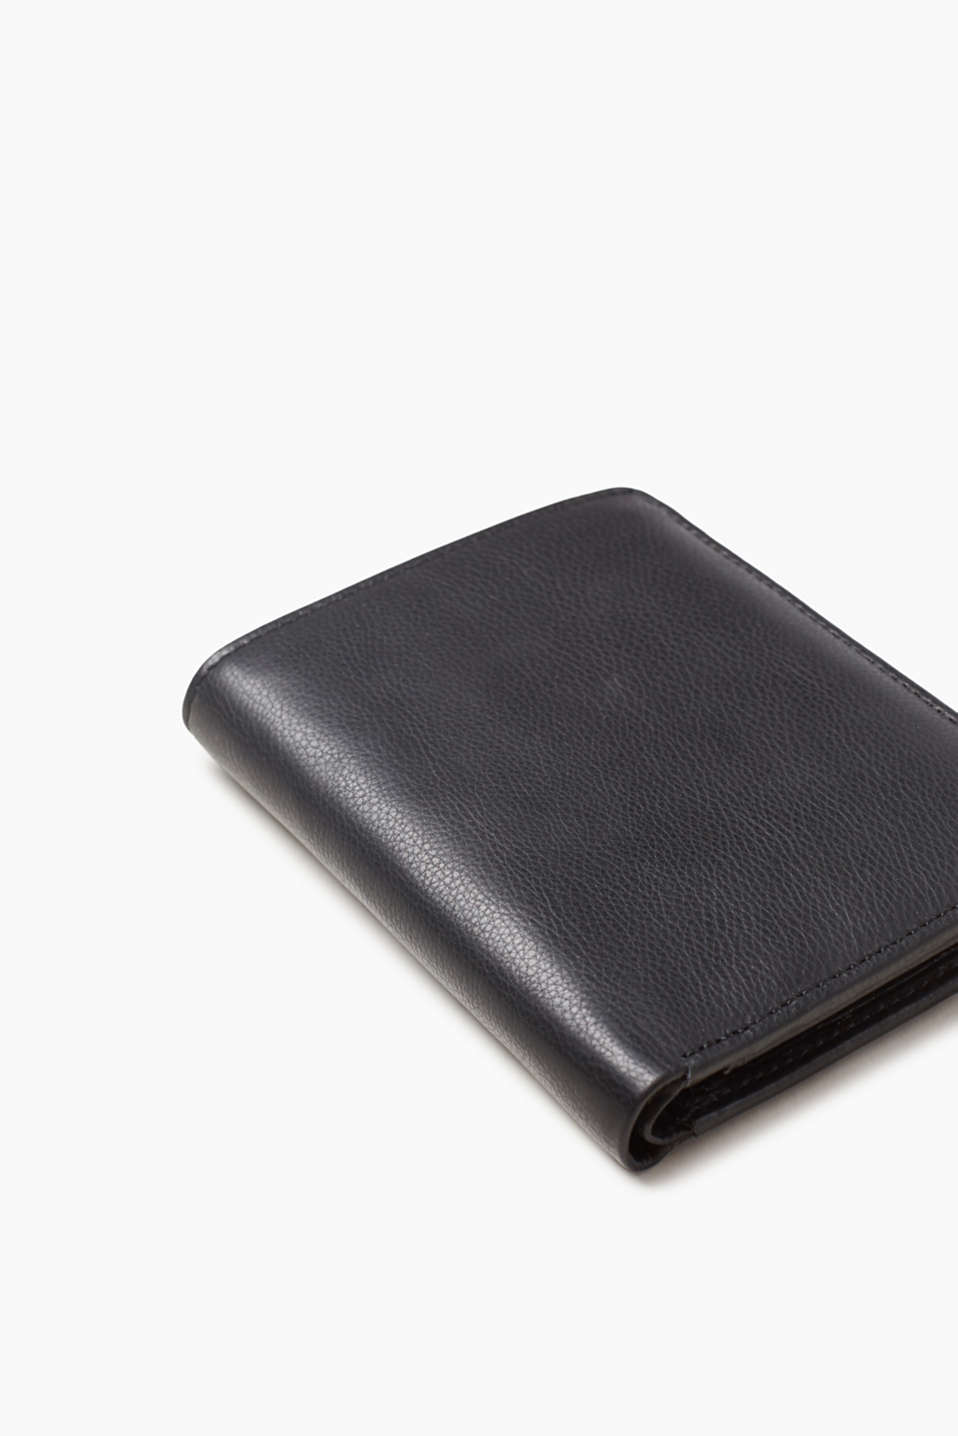 A classic! High-quality calfskin and the timeless design make this wallet a true companion.